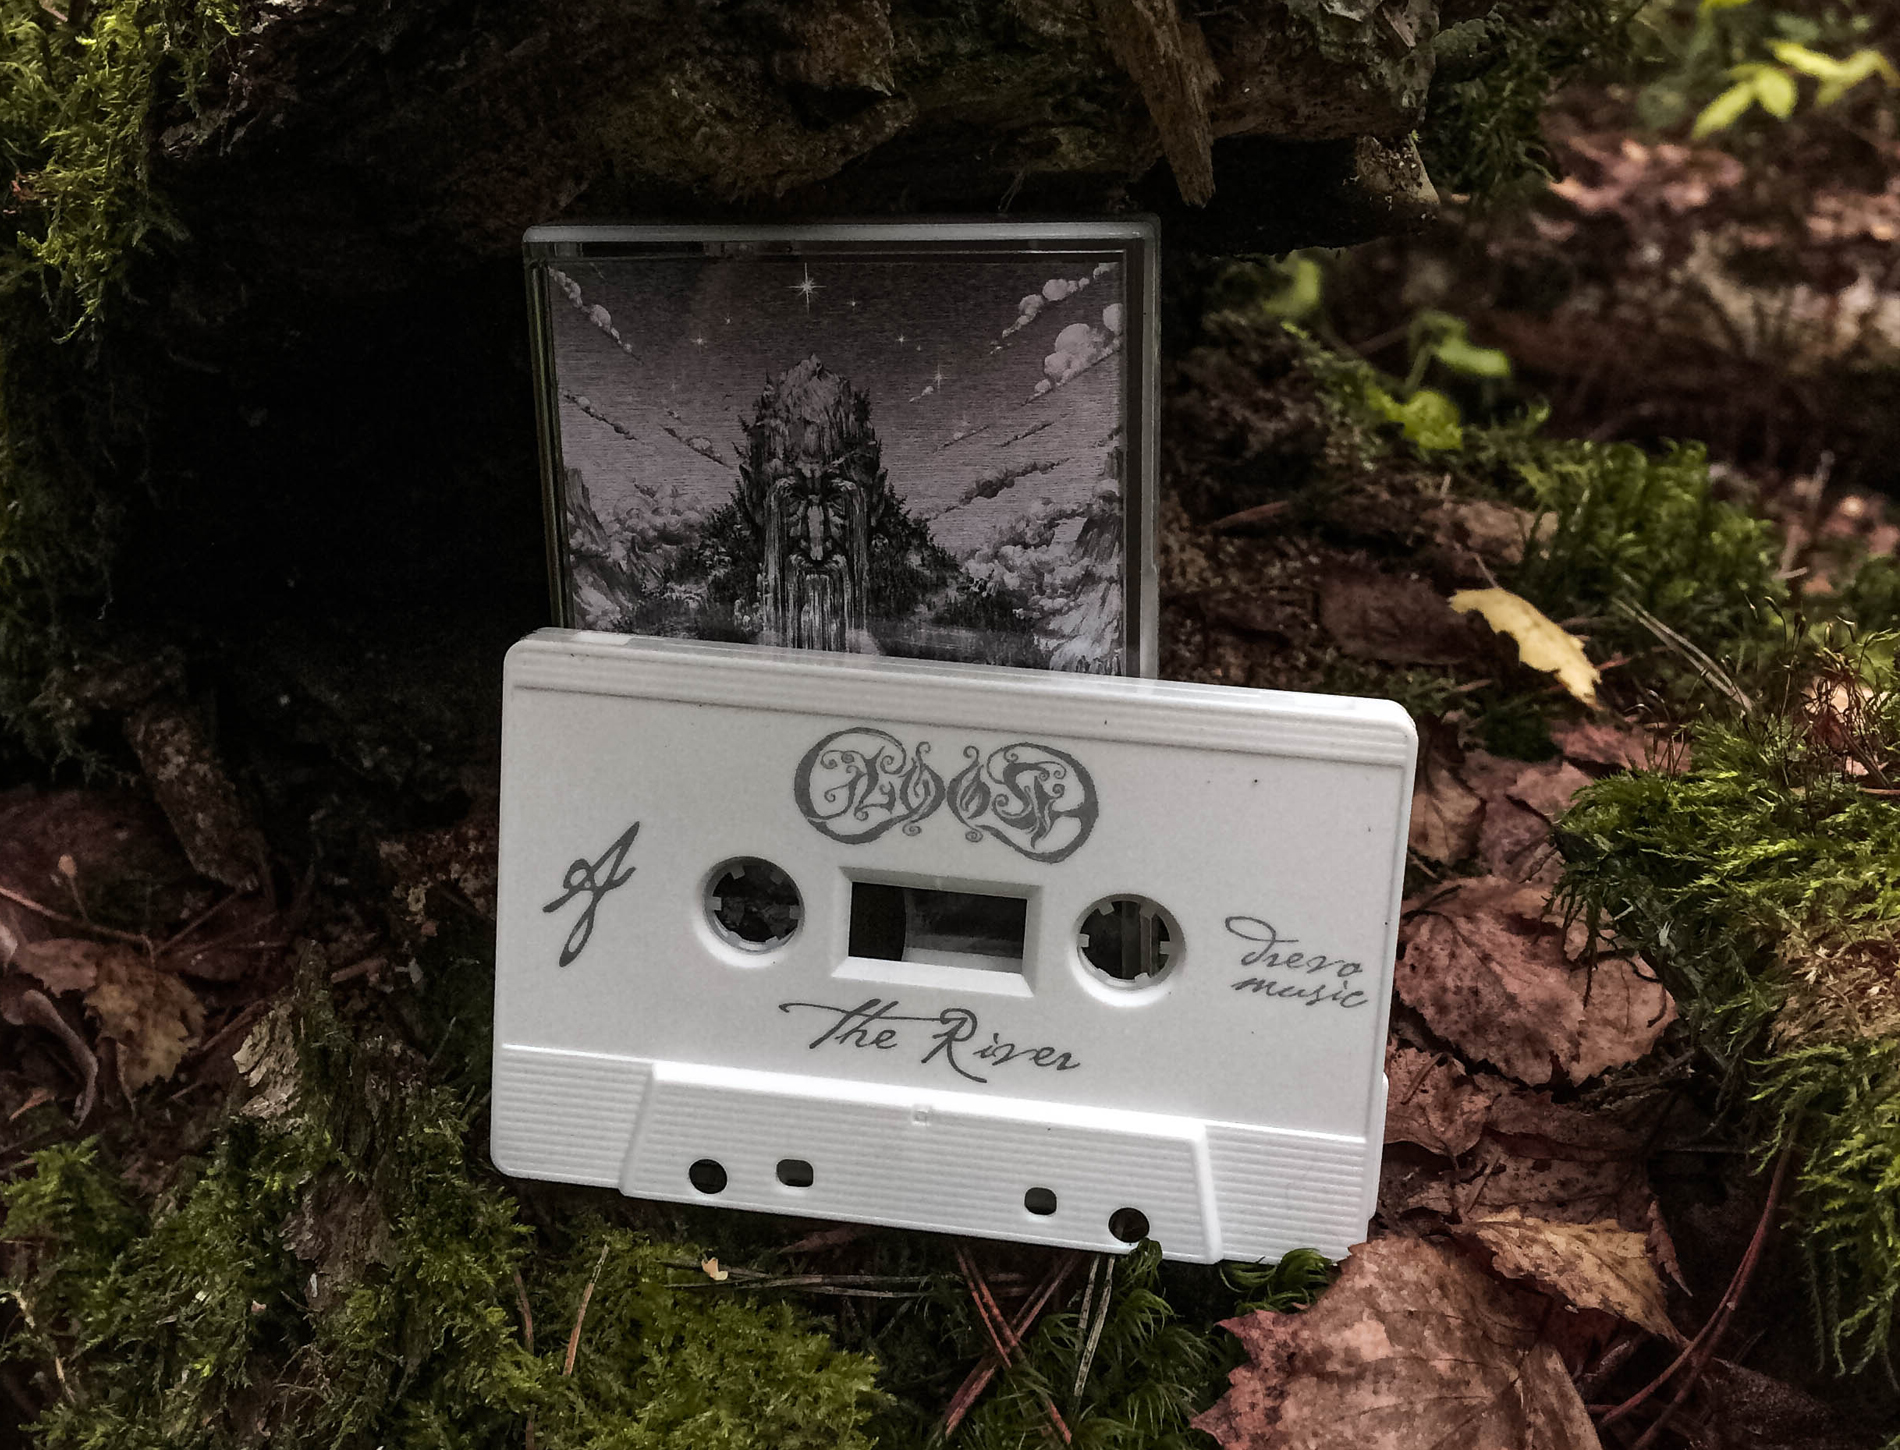 Gloosh - The River, cassette